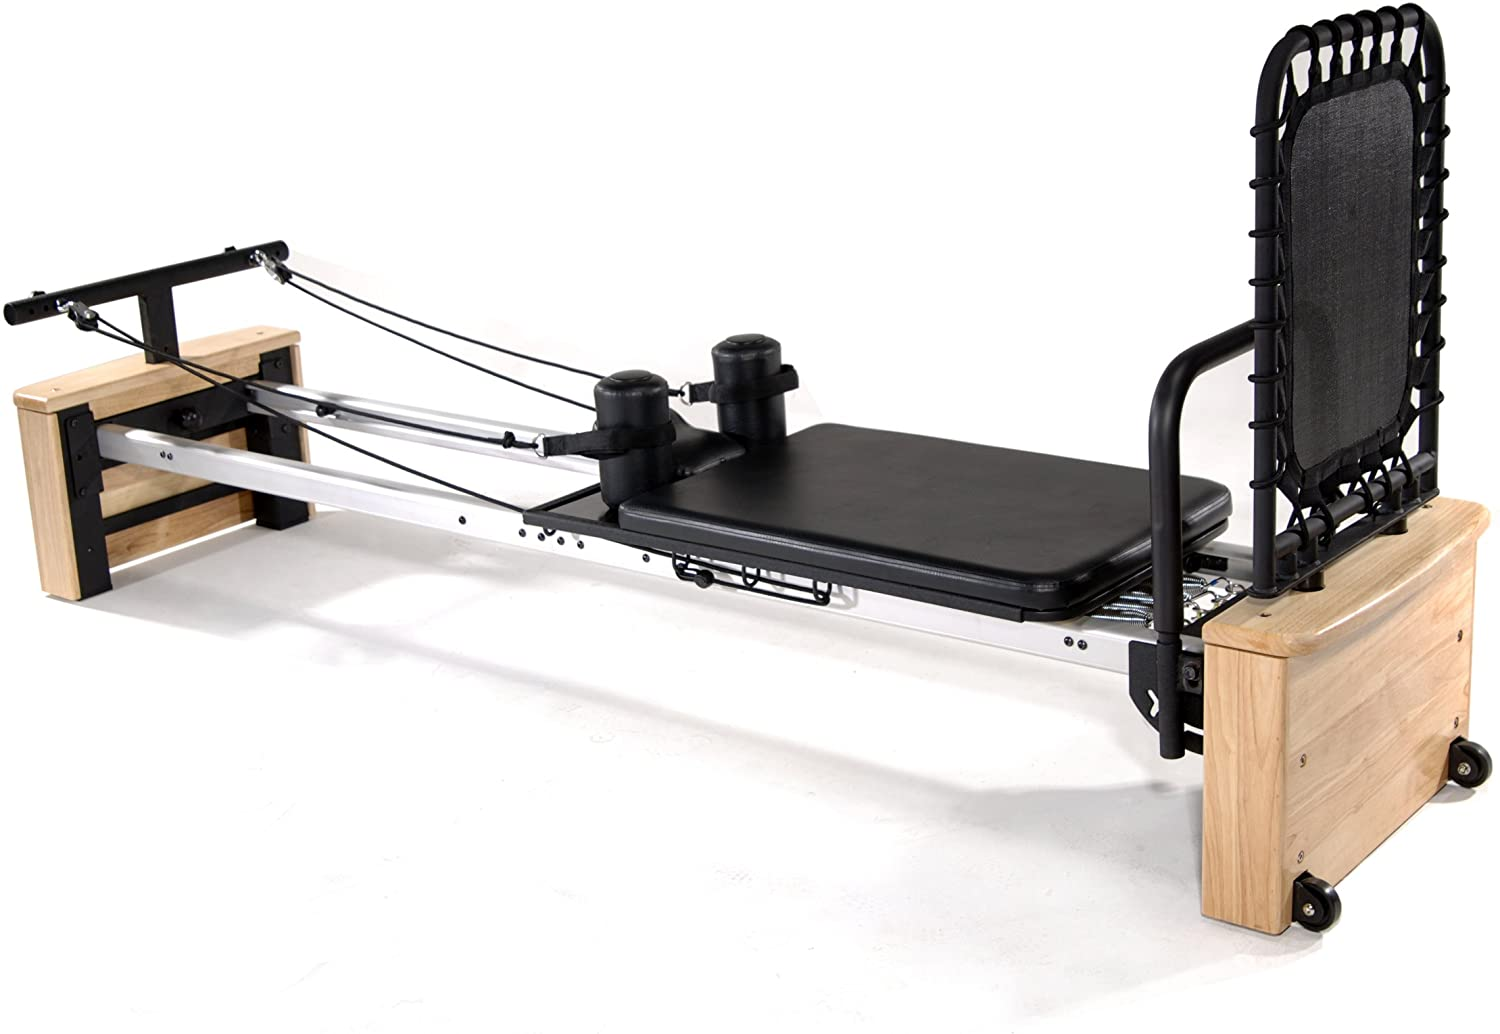 AeroPilates Pro XP557 Reformer with Free-Form Cardio Rebounder Review